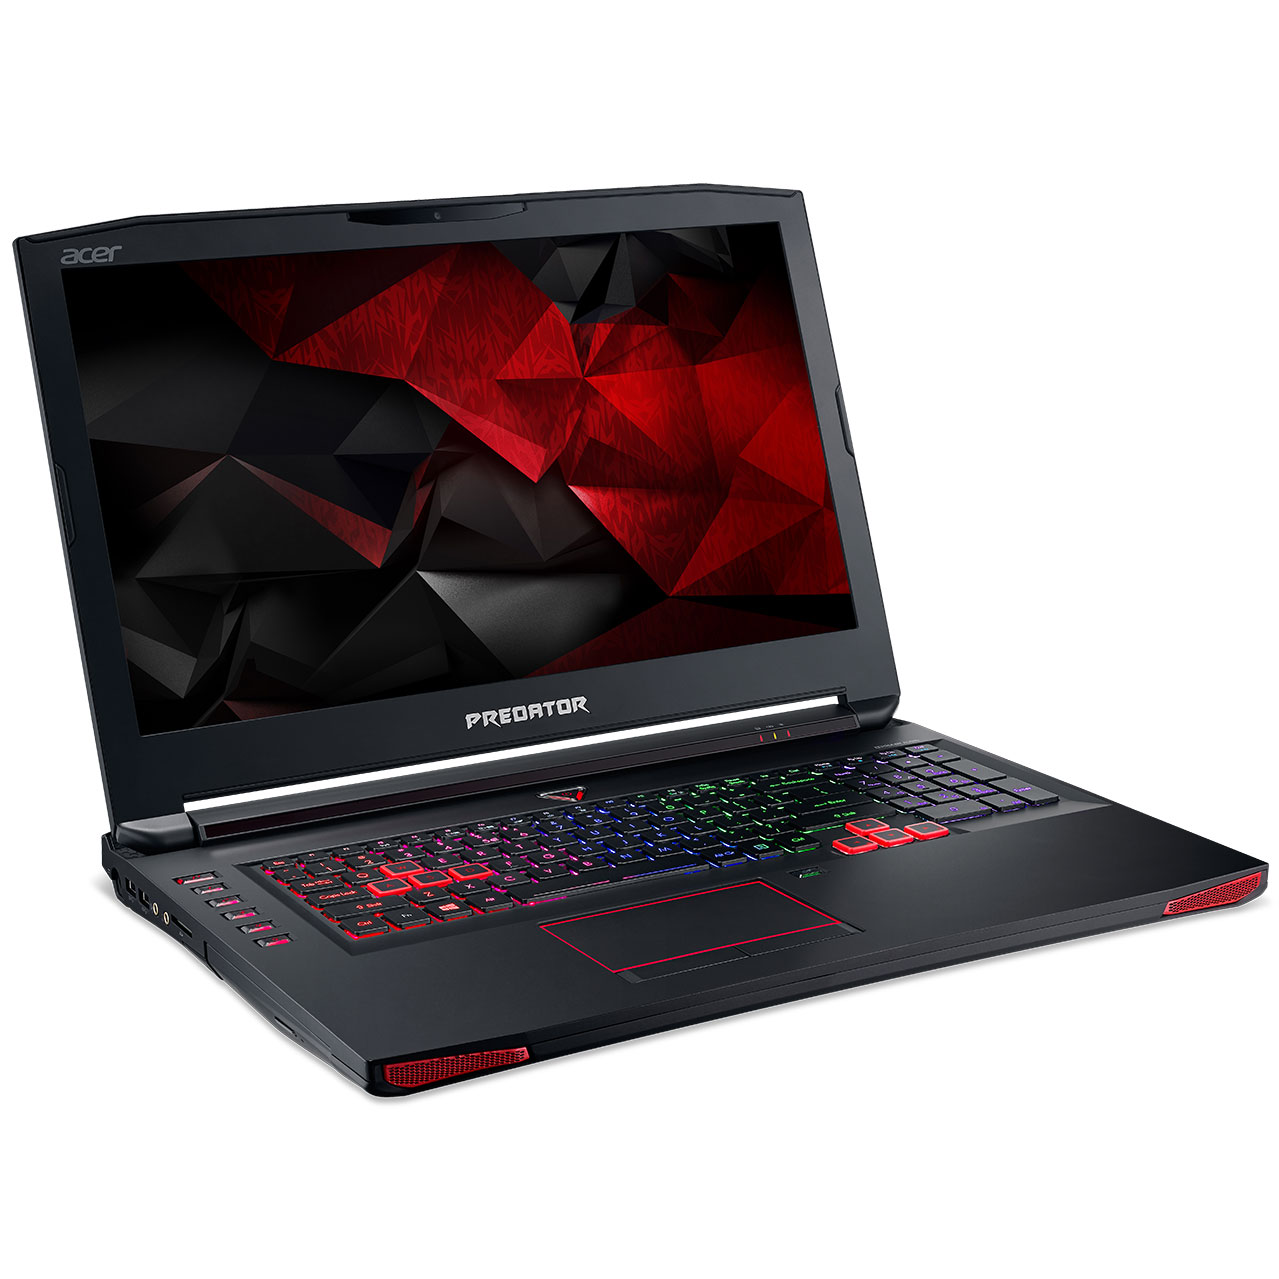 "PC portable Acer Predator 17 G9-793-55ZQ Intel Core i5-6300HQ 8 Go SSD 128 Go + HDD 1 To 17.3"" LED Full HD G-SYNC NVIDIA GeForce GTX 1060 Graveur DVD Wi-Fi AC/Bluetooth Webcam Windows 10 Famille 64 bits"